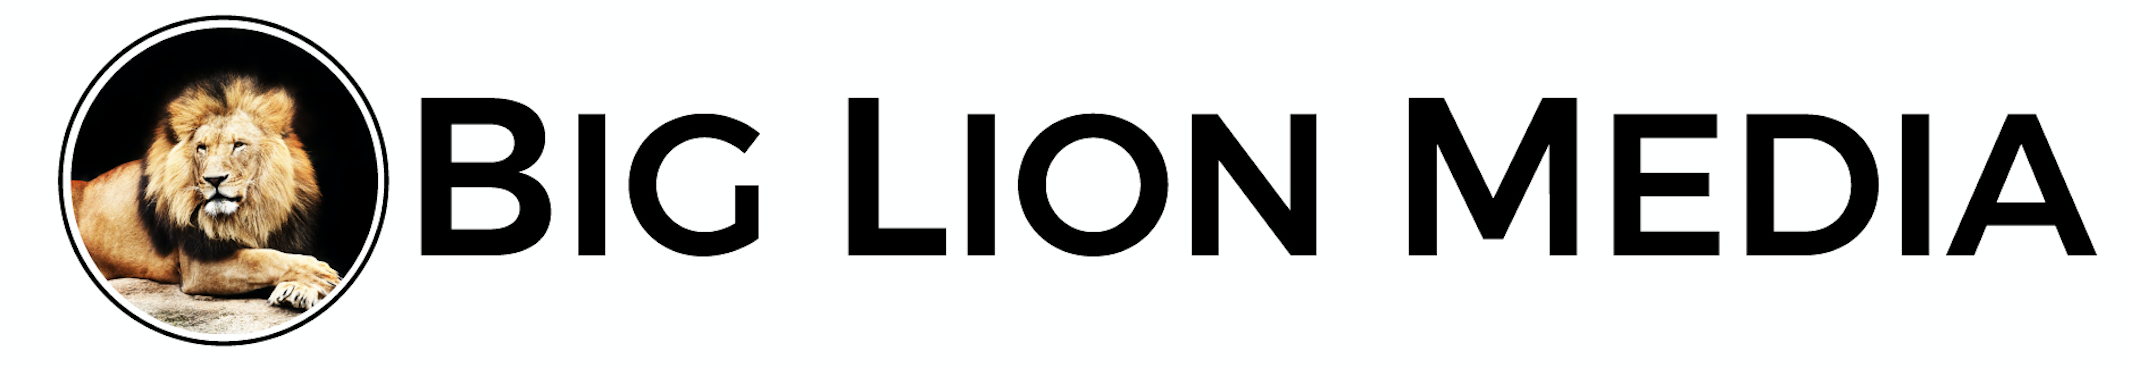 Biglion Social Media